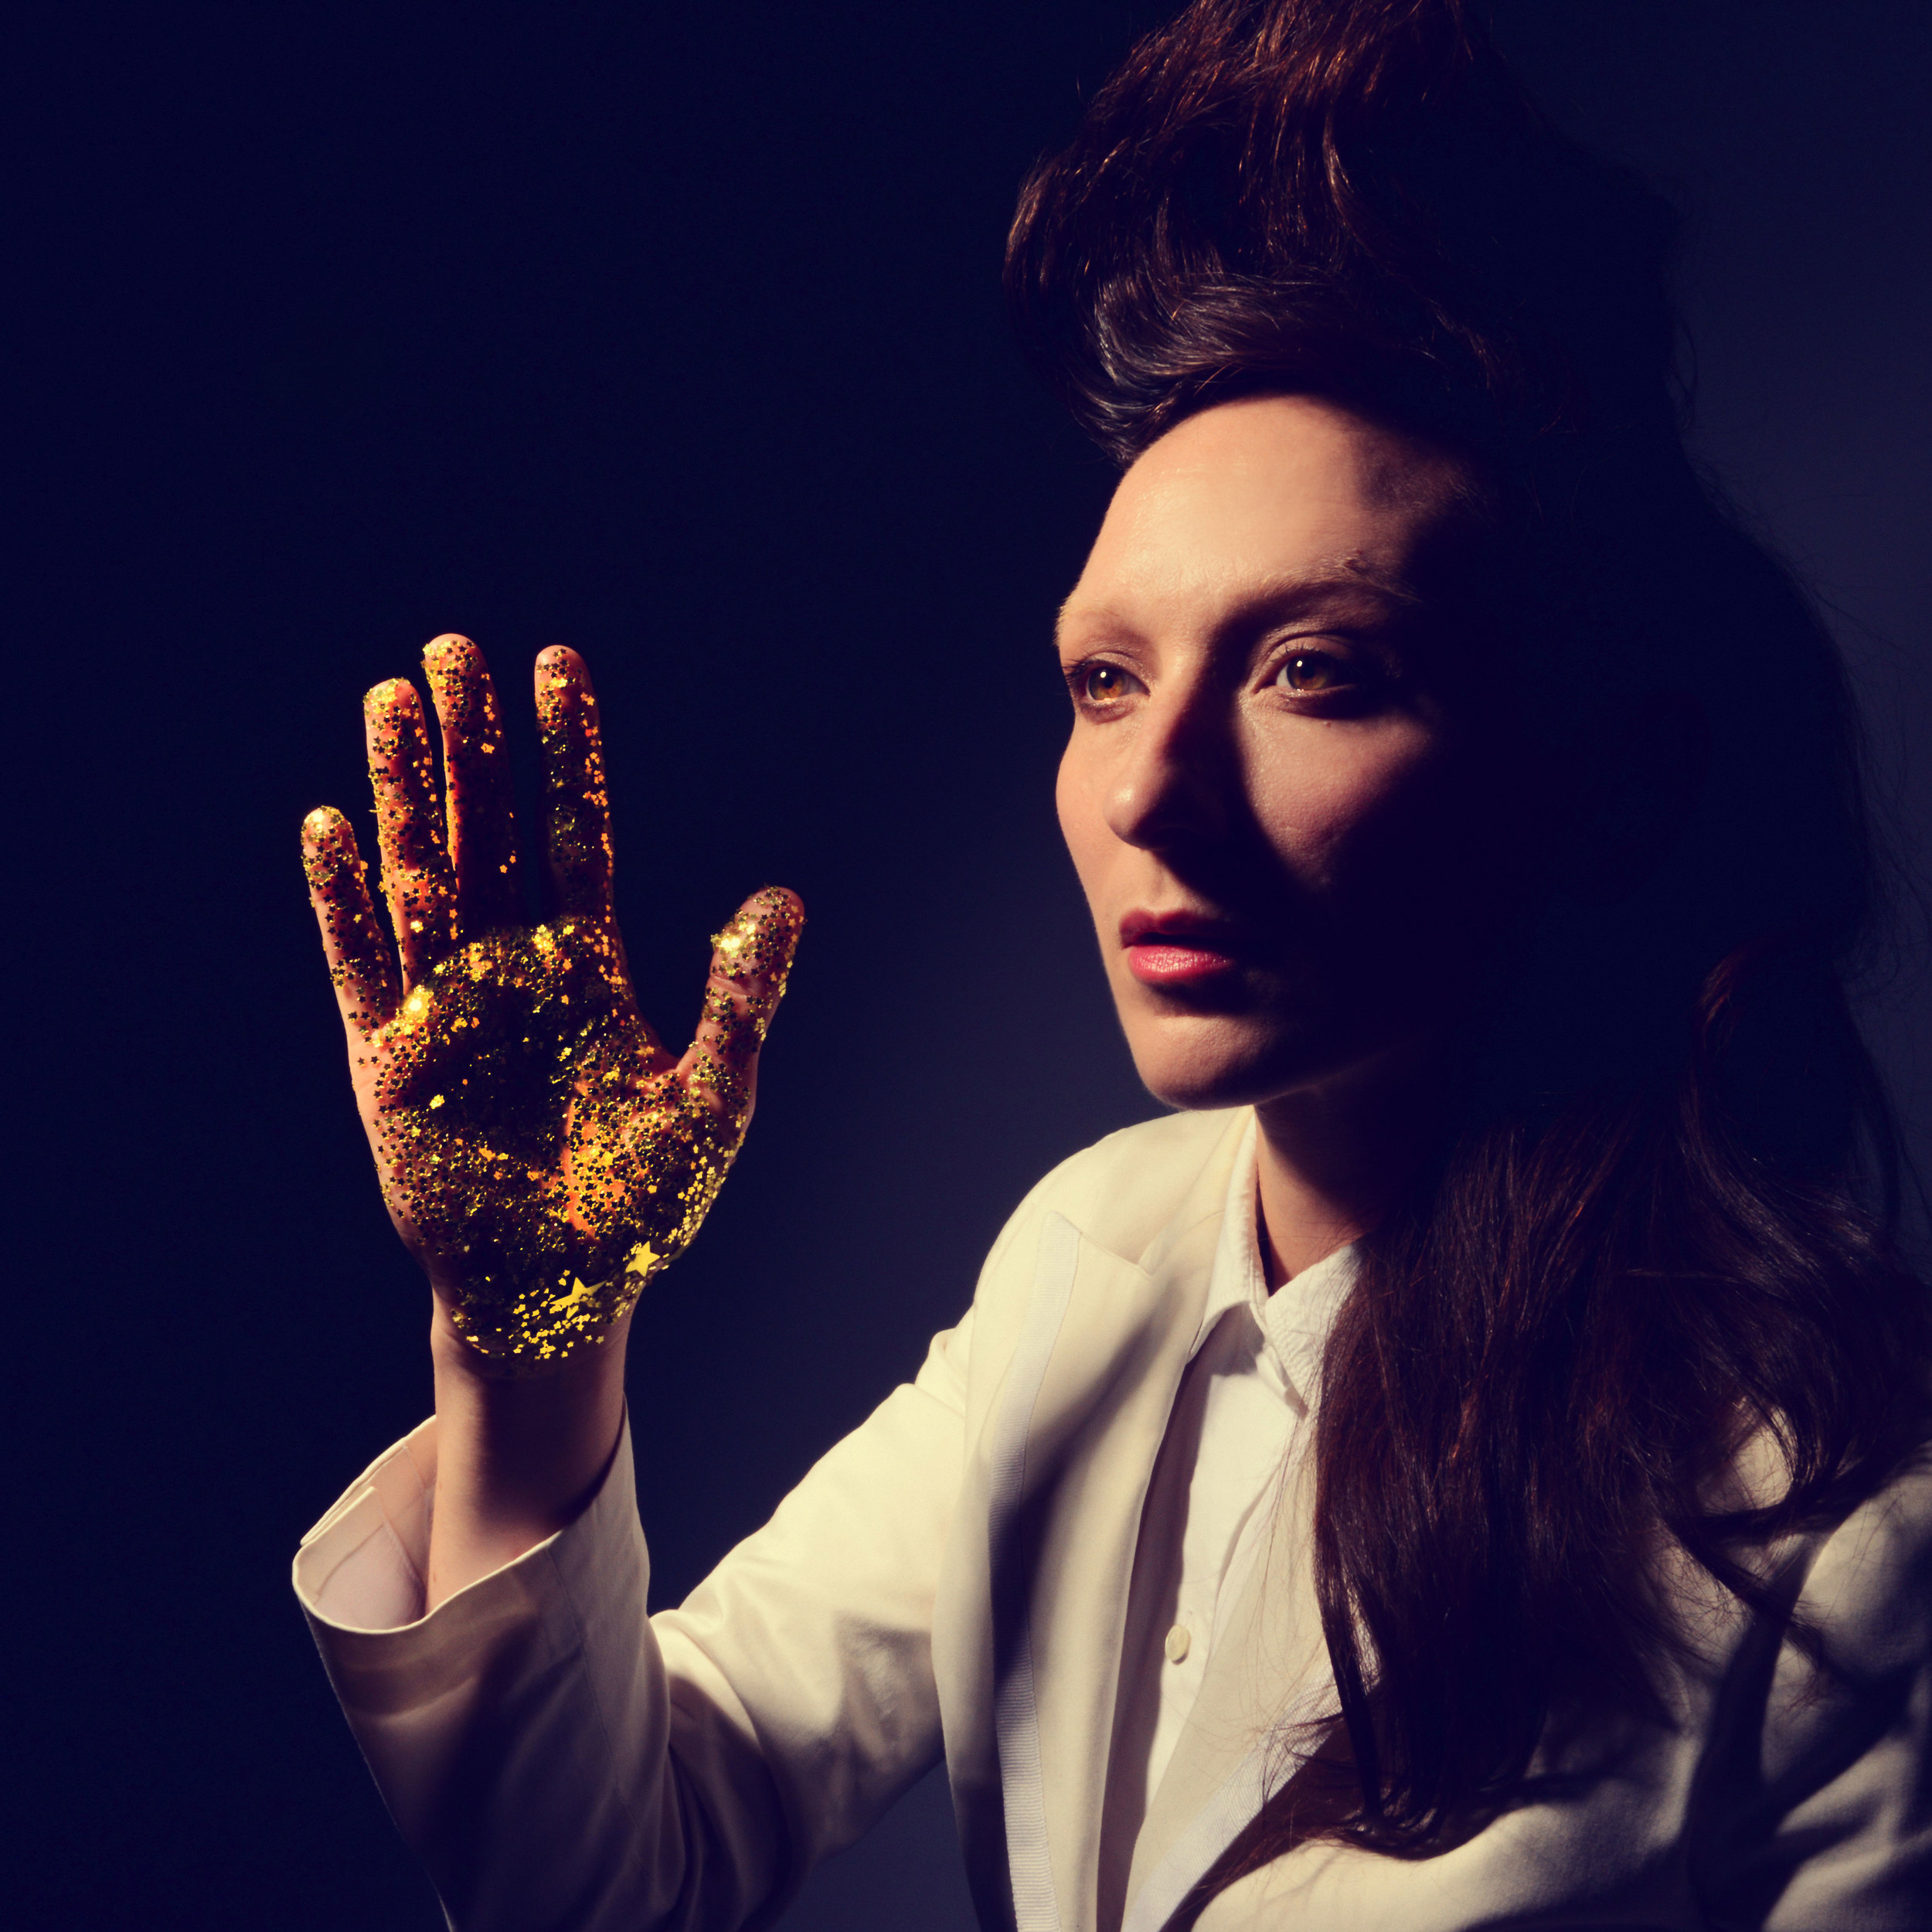 My Brightest Diamond album cover, This Is My Hand